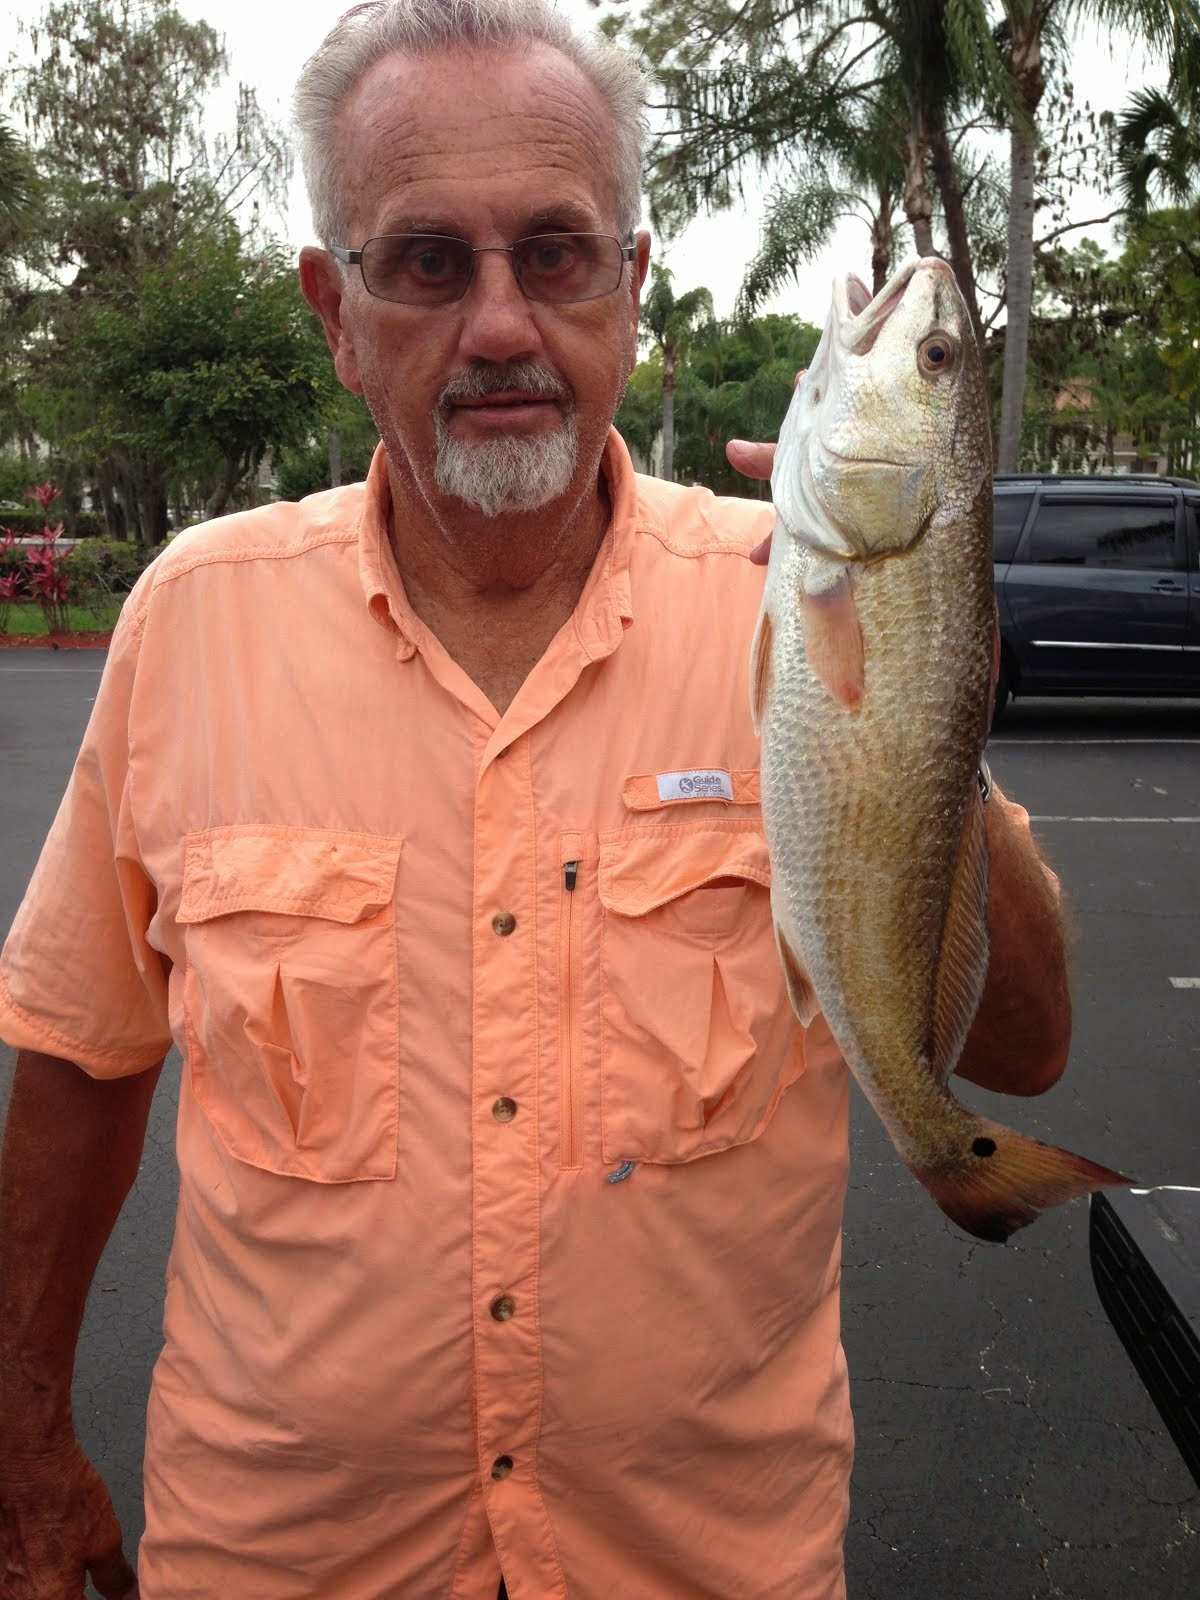 Me/Redfish